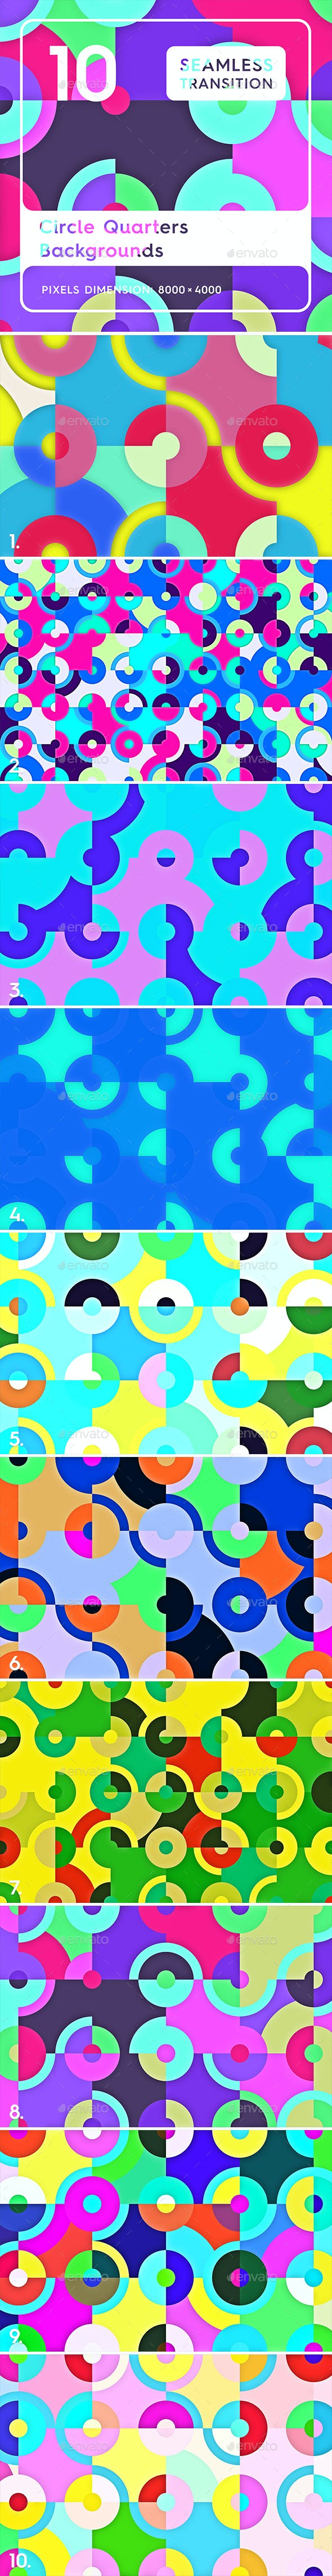 10 Circle Quarters Backgrounds - 3DOcean Item for Sale